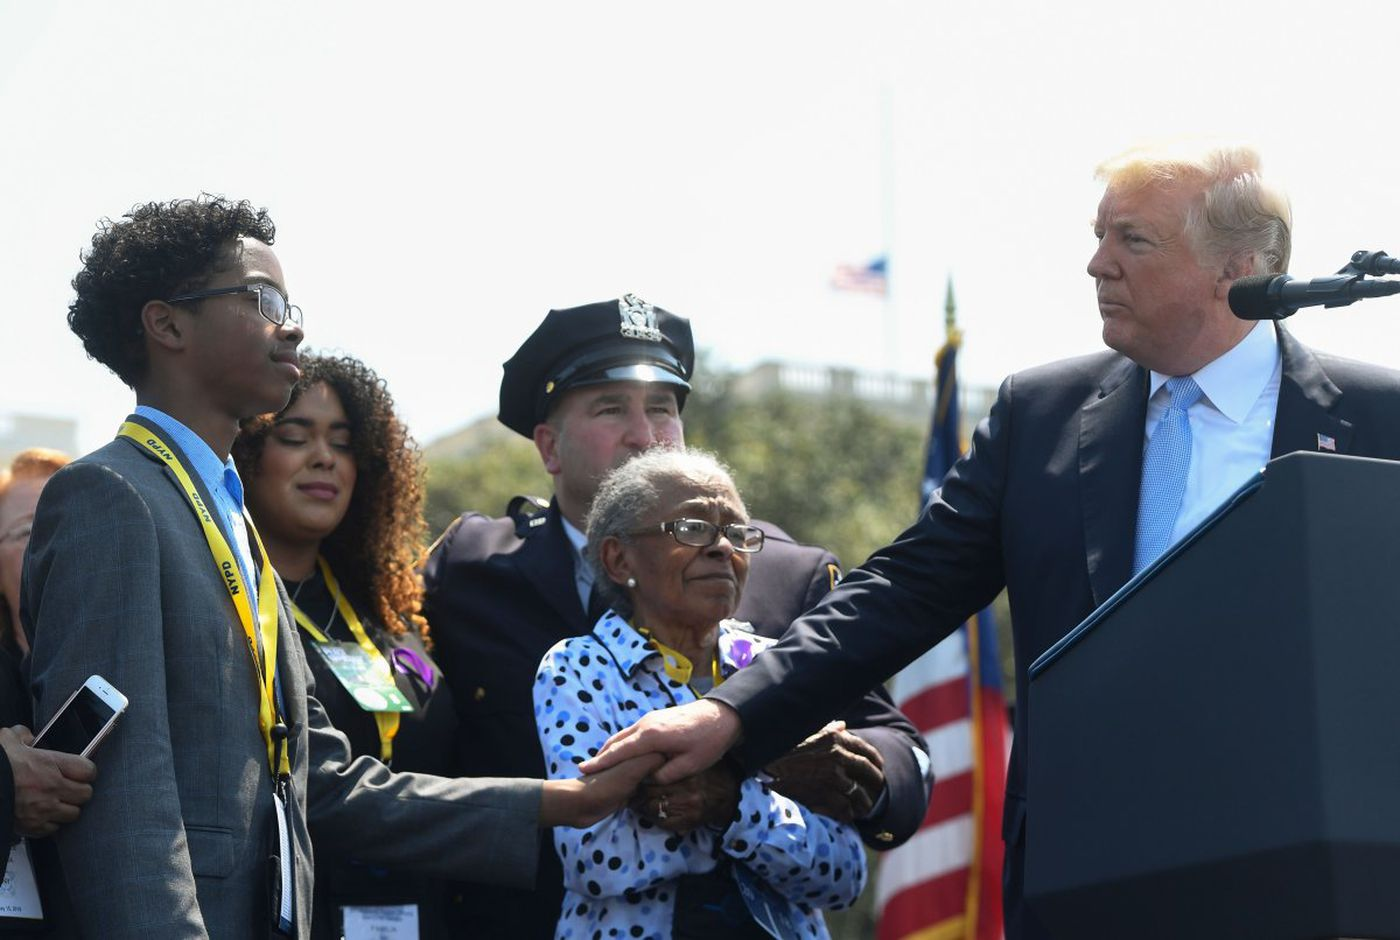 President Trump stands with the family of a fallen police officer Miosotis Familia as he addresses the 37th Annual National Peace Officers Memorial Service. (SAUL LOEB/AFP/Getty Images)